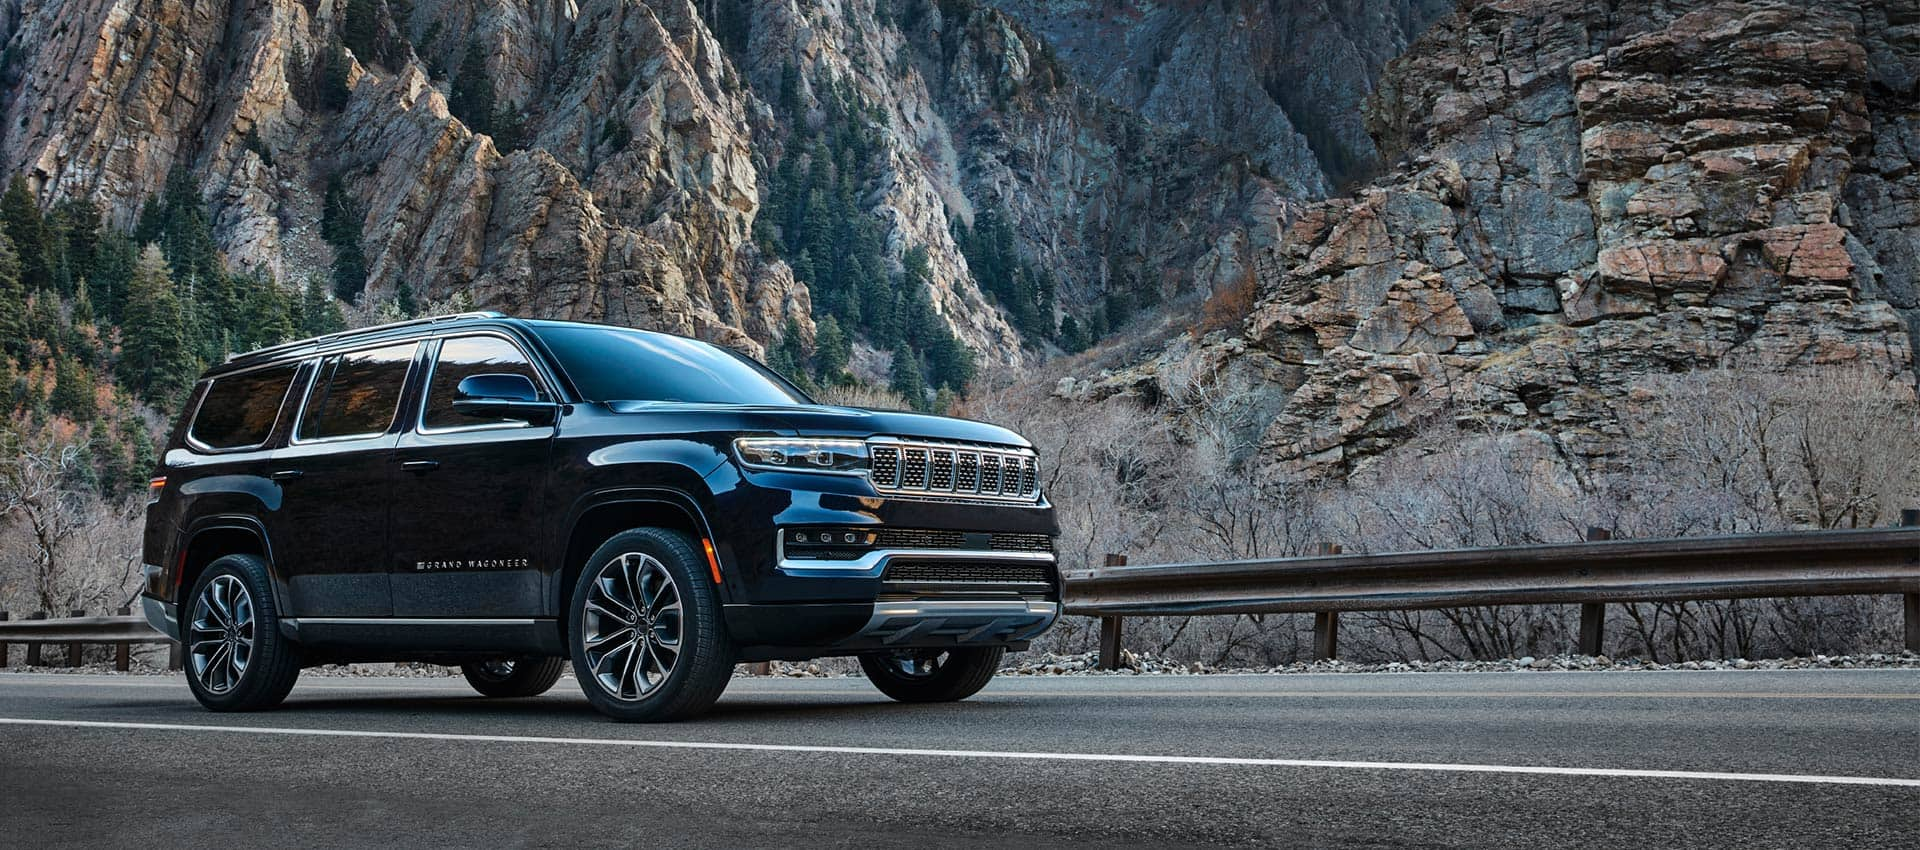 The 2022 Grand Wagoneer parked on the shoulder of a highway against a backdrop of soaring mountains.